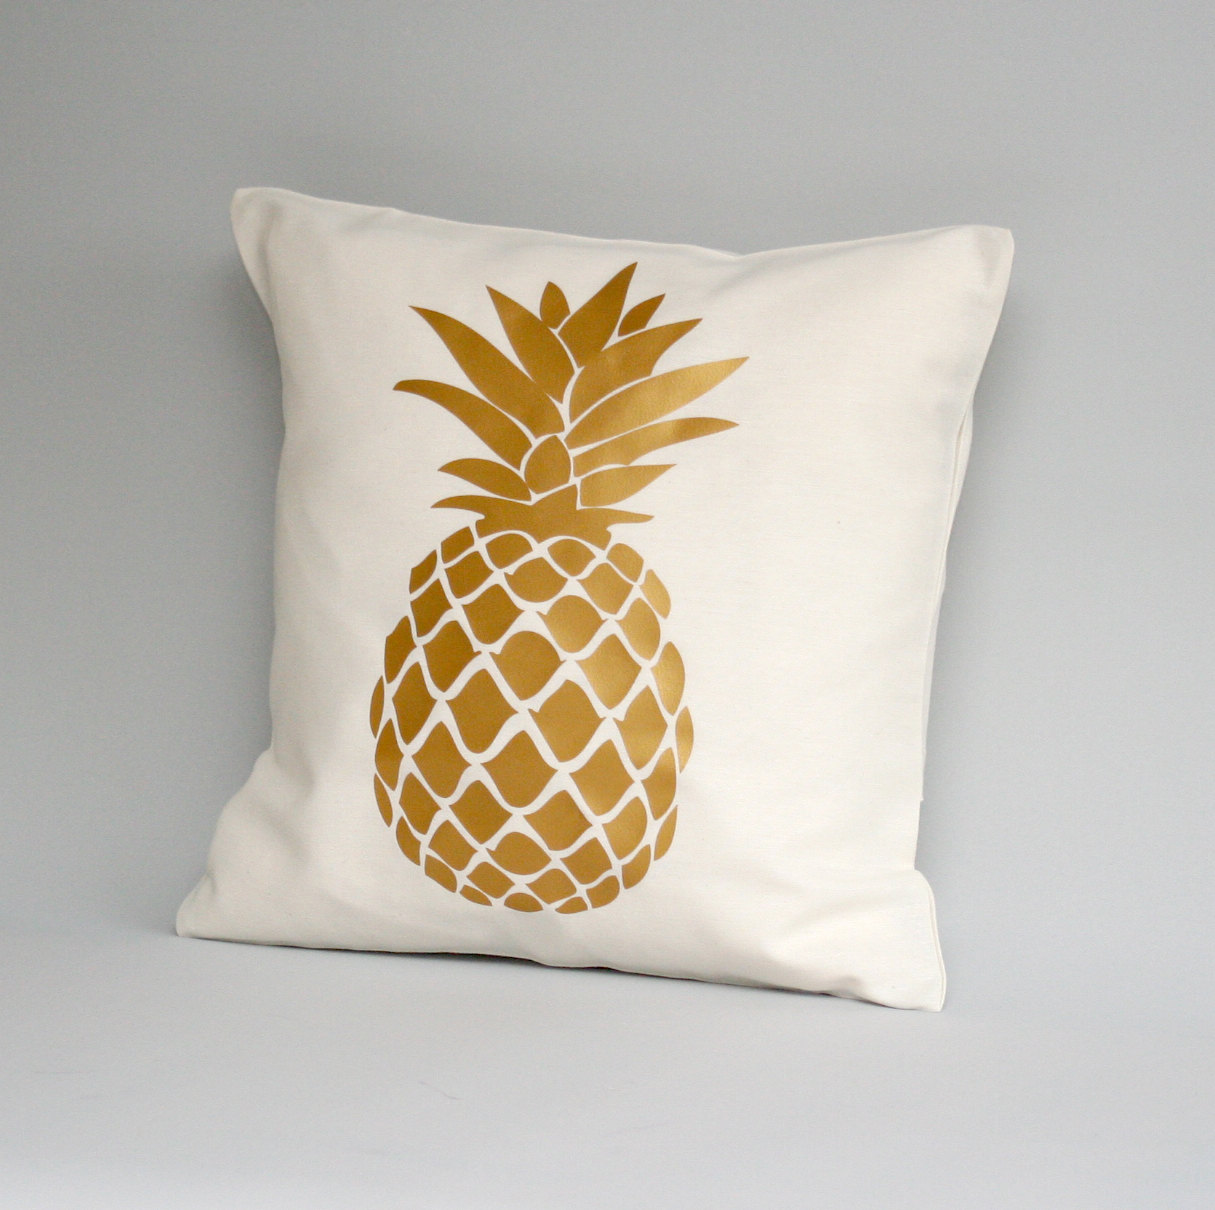 Image of: pineapple decorative pillows